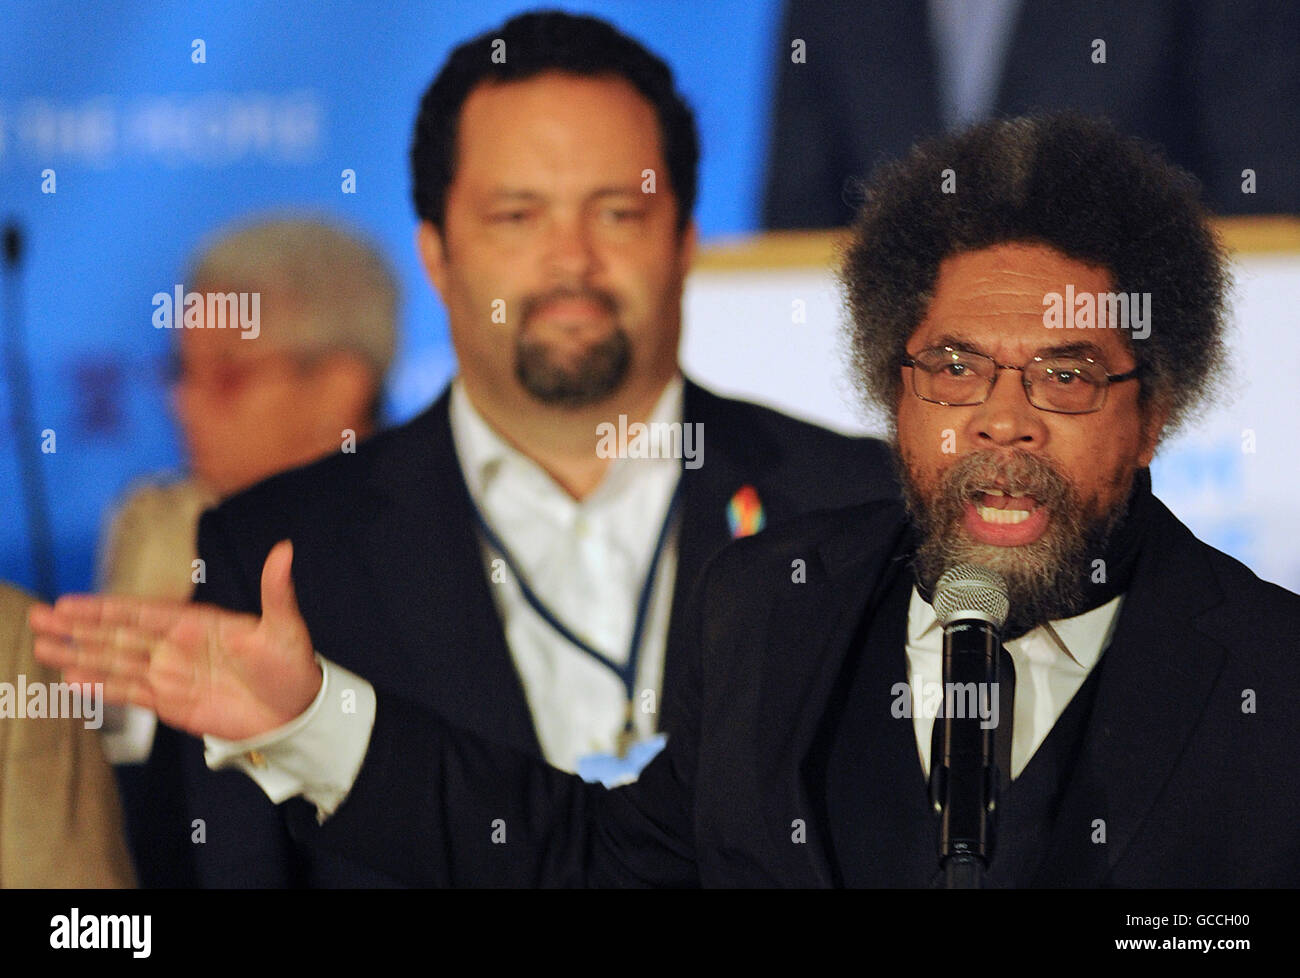 Orlando, Florida, USA. 9th July, 2016. Social activist Cornel West speaks against the Trans-Pacific Partnership - Stock Image